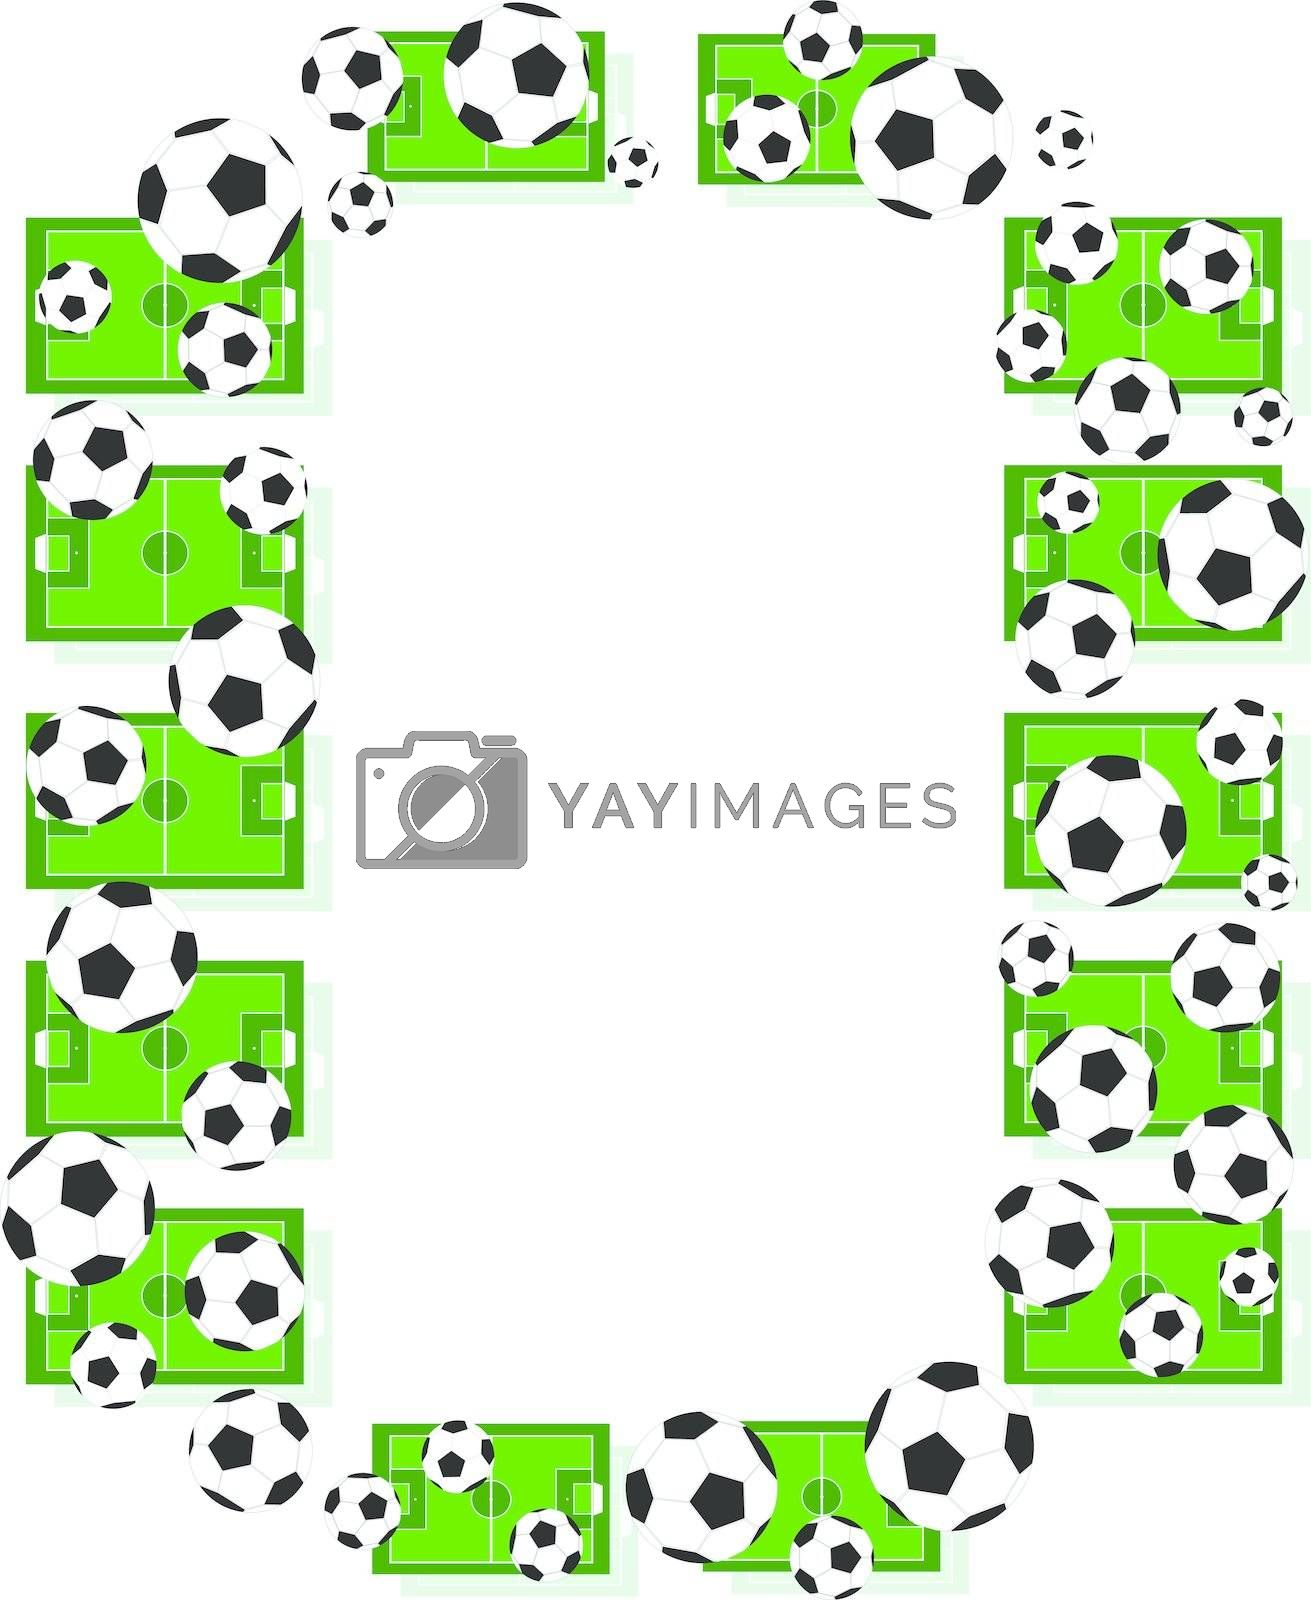 O, Alphabet Football letters made of soccer balls and fields. Vector